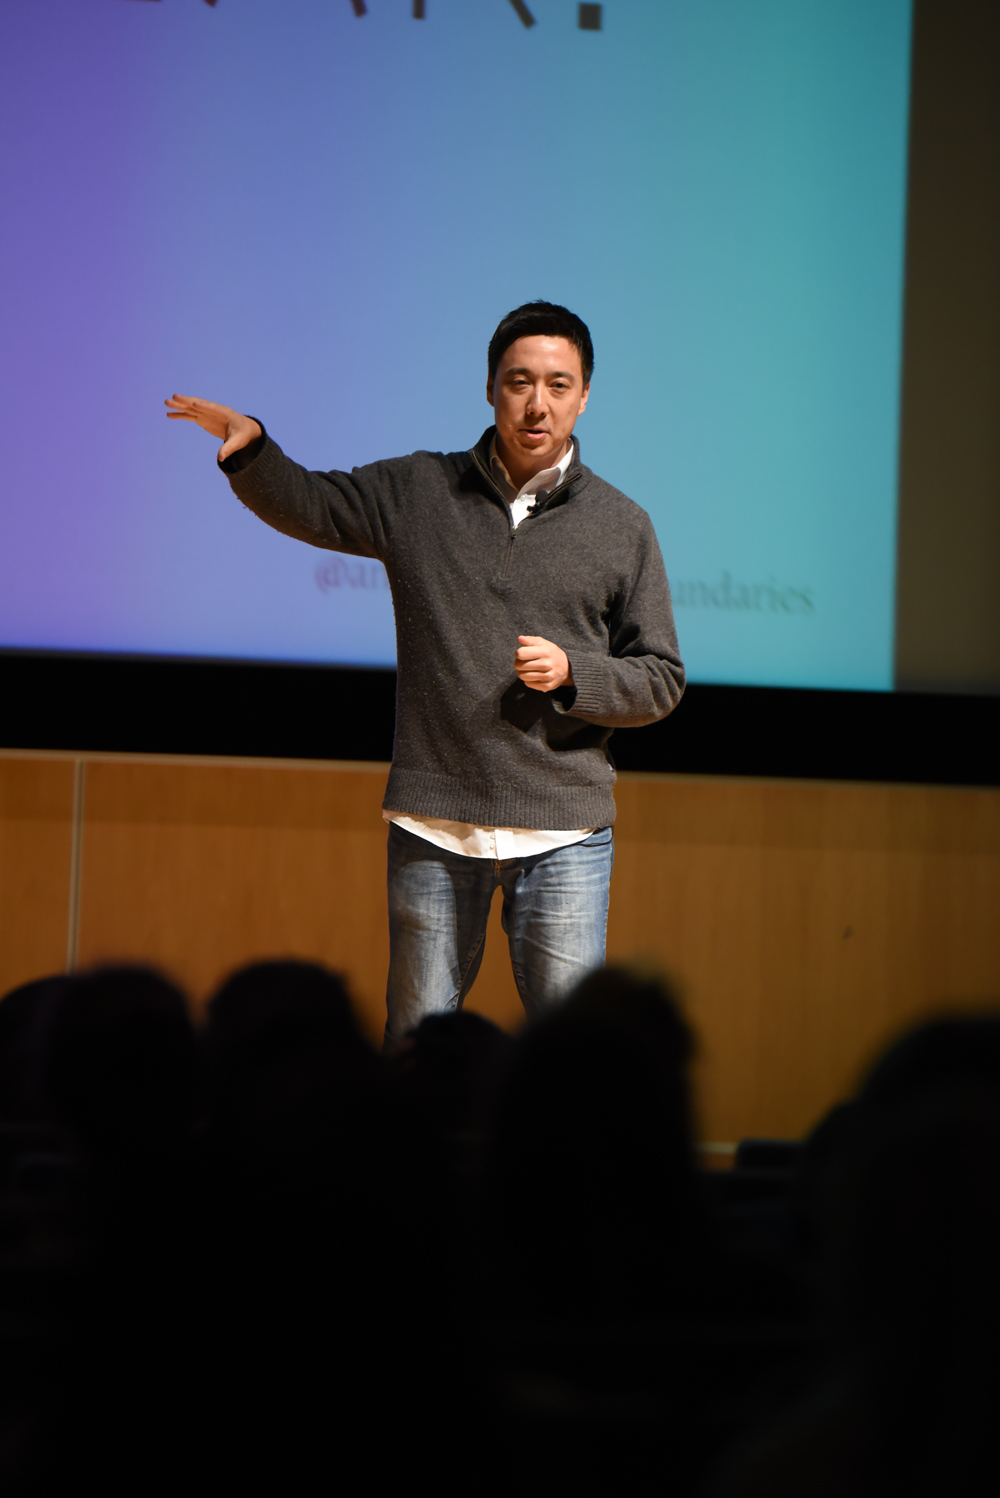 Traveler Andy Stoll speaks during his lecture in the UConn Student Union Theater in Storrs, Connecticut on Monday, April 11, 2016. (Allen Lang/The Daily Campus)